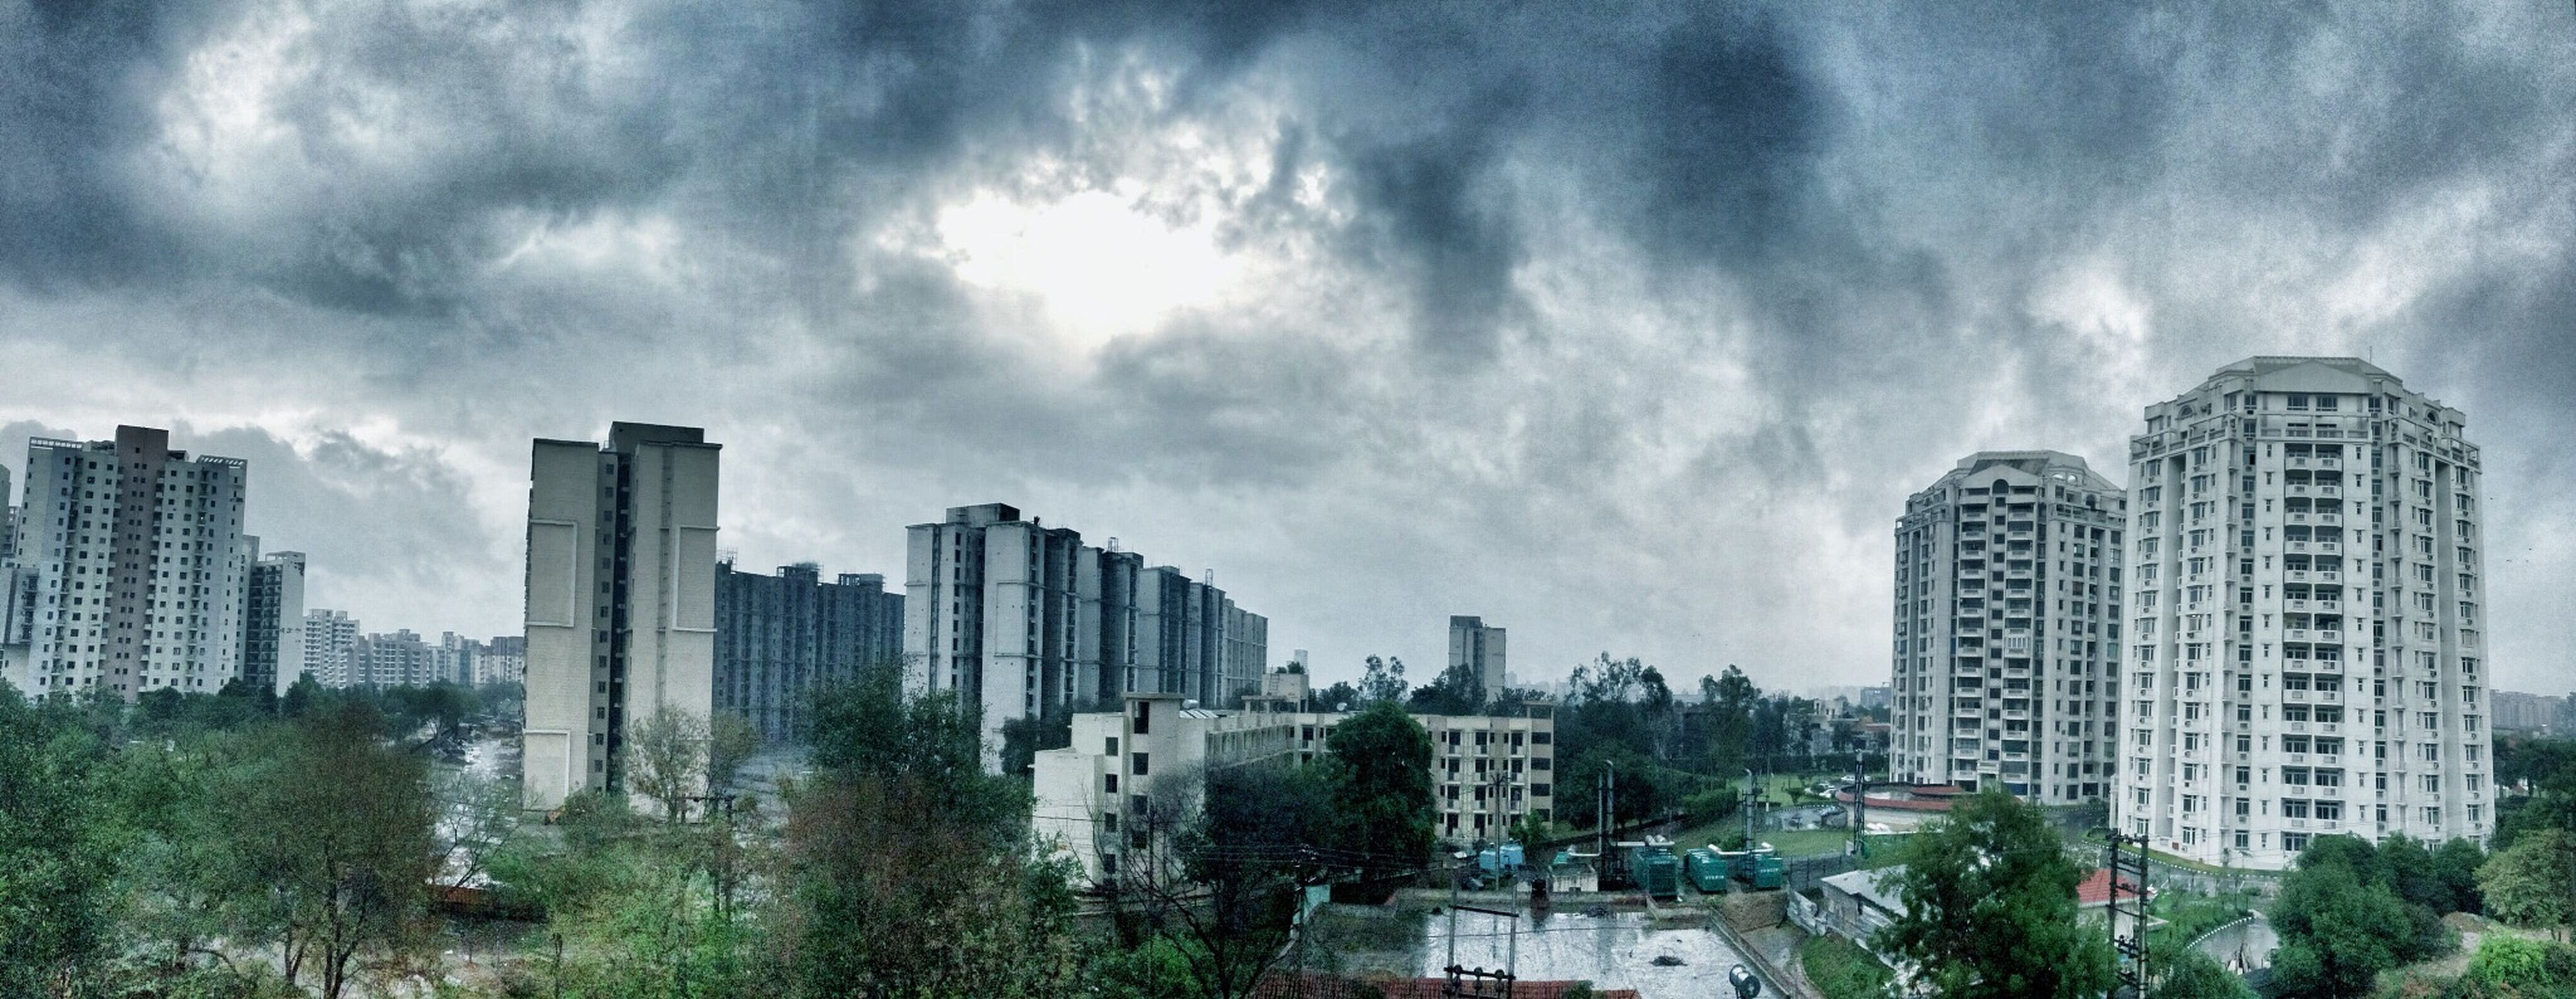 building exterior, architecture, built structure, city, sky, cloud - sky, skyscraper, tree, cloudy, cityscape, modern, tall - high, office building, cloud, tower, urban skyline, growth, building, city life, residential building